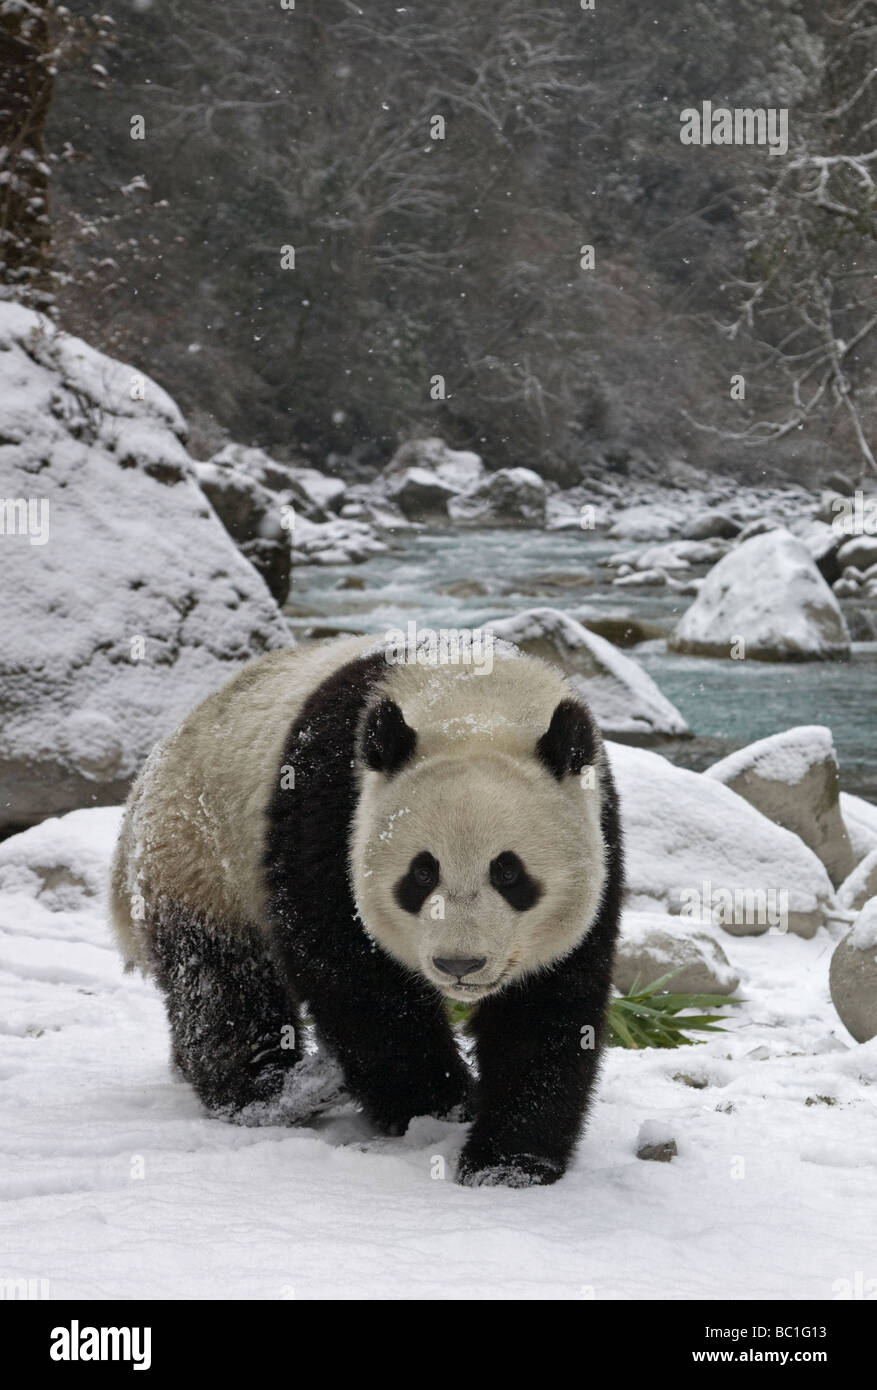 Giant panda on snow by the river Wolong Sichuan China - Stock Image